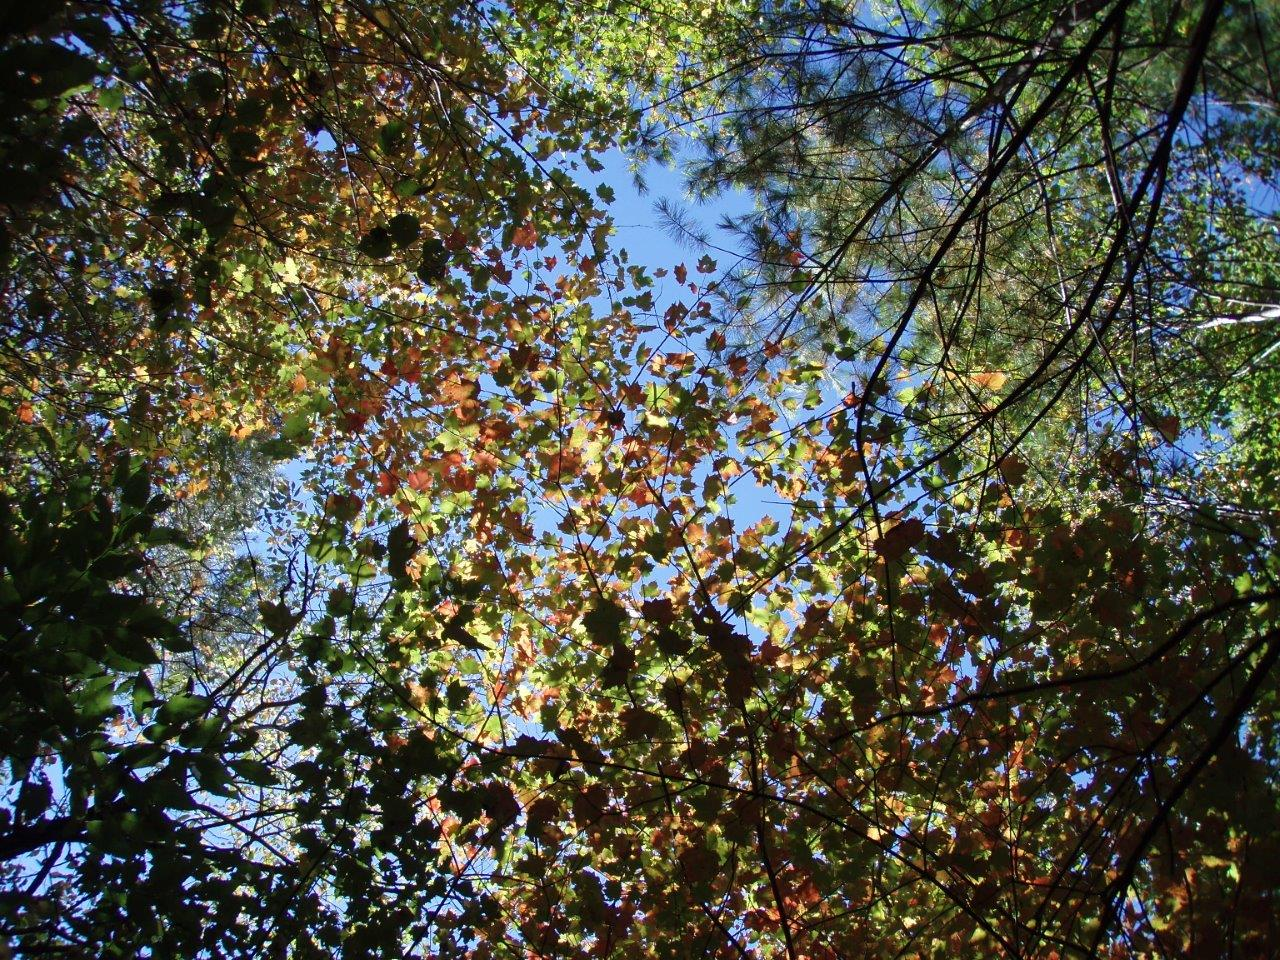 In The Forest - A Canopy Above